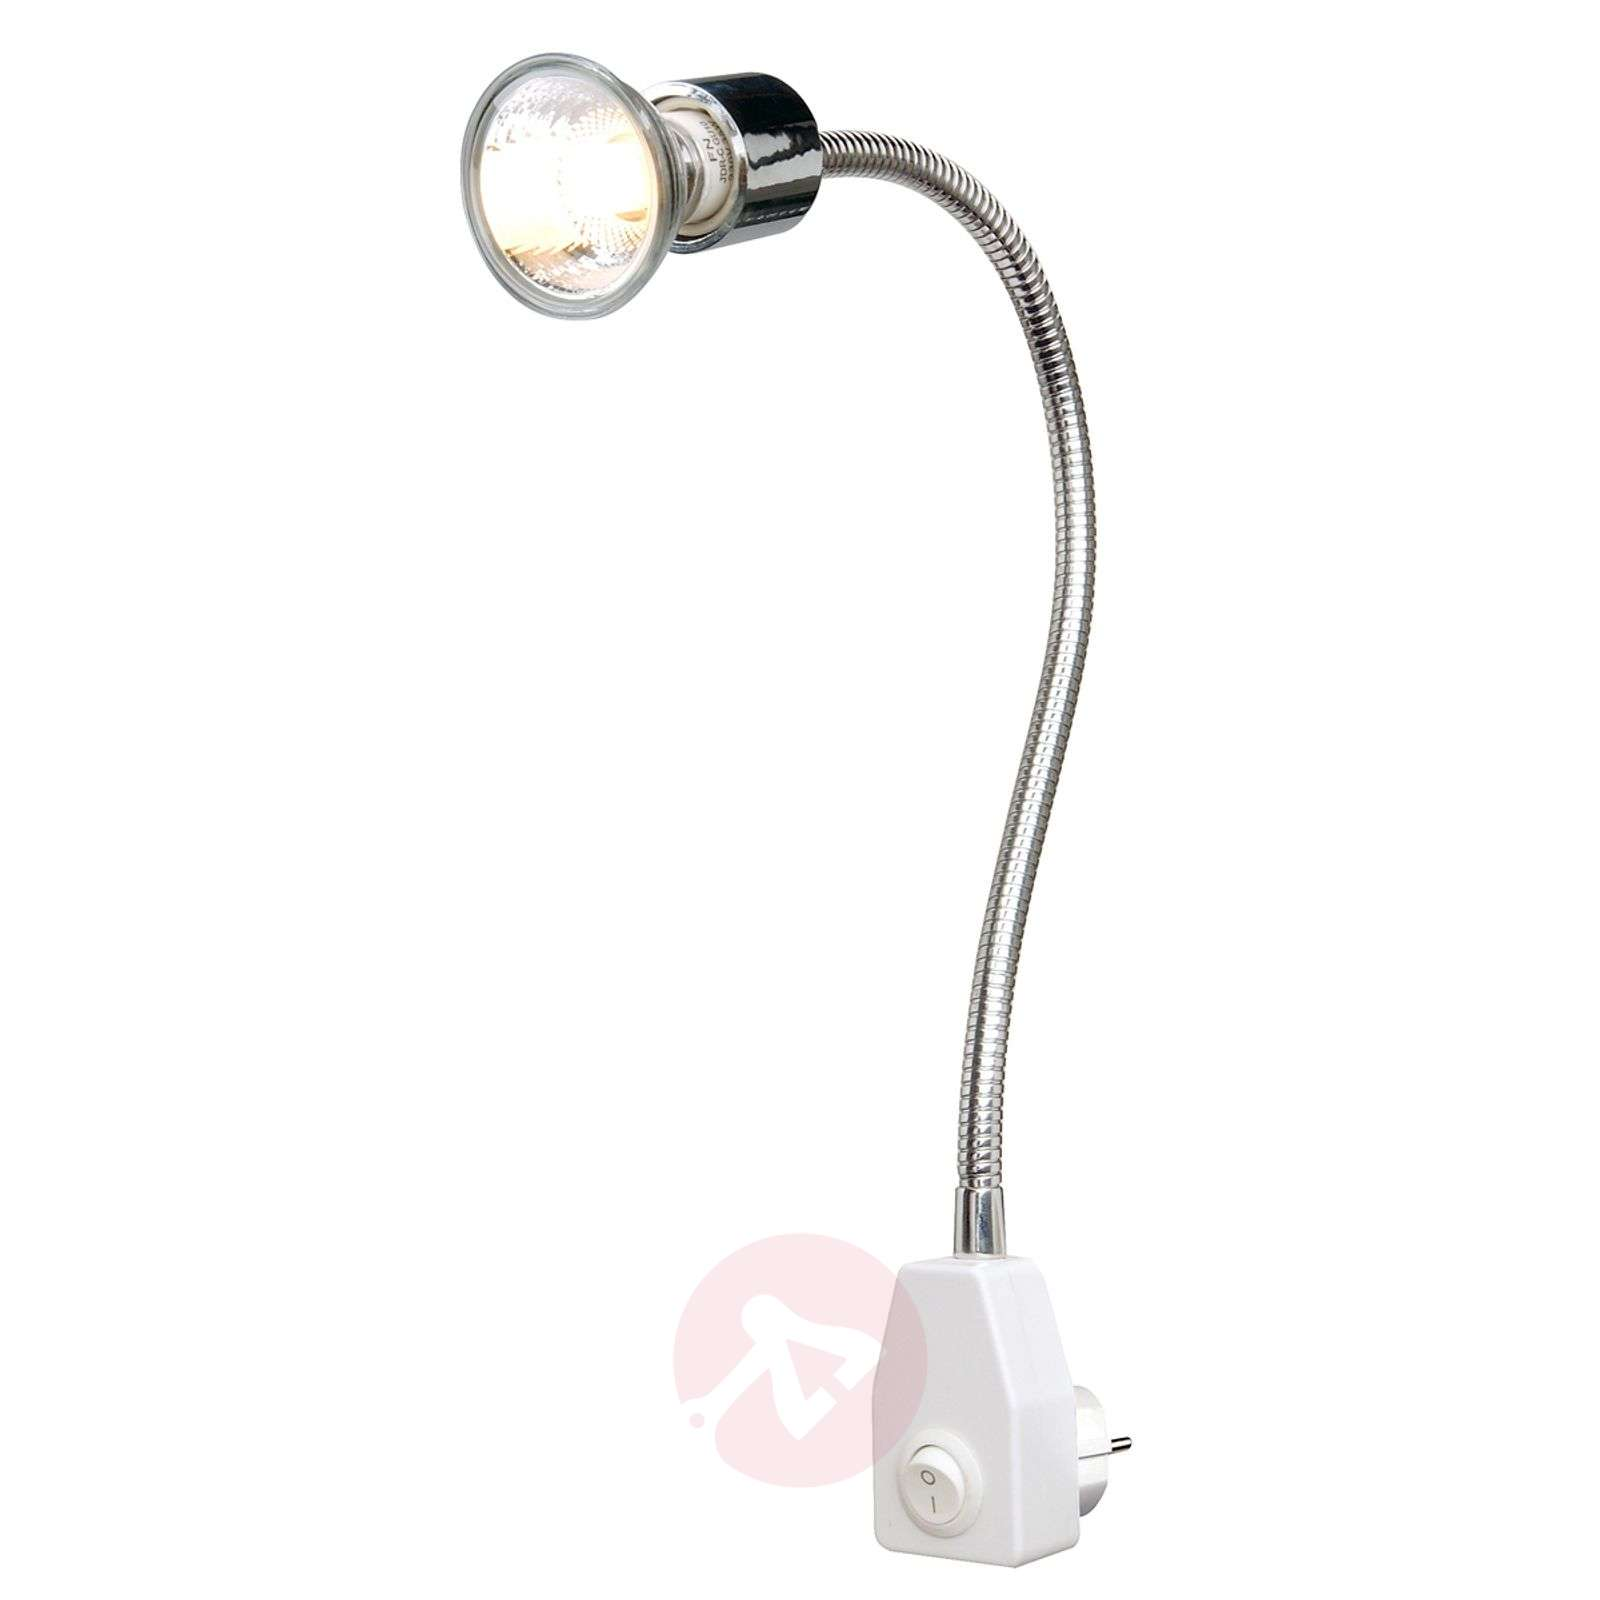 Displaylamp Dio Flex Plug met GU10-fitting-5504388-01